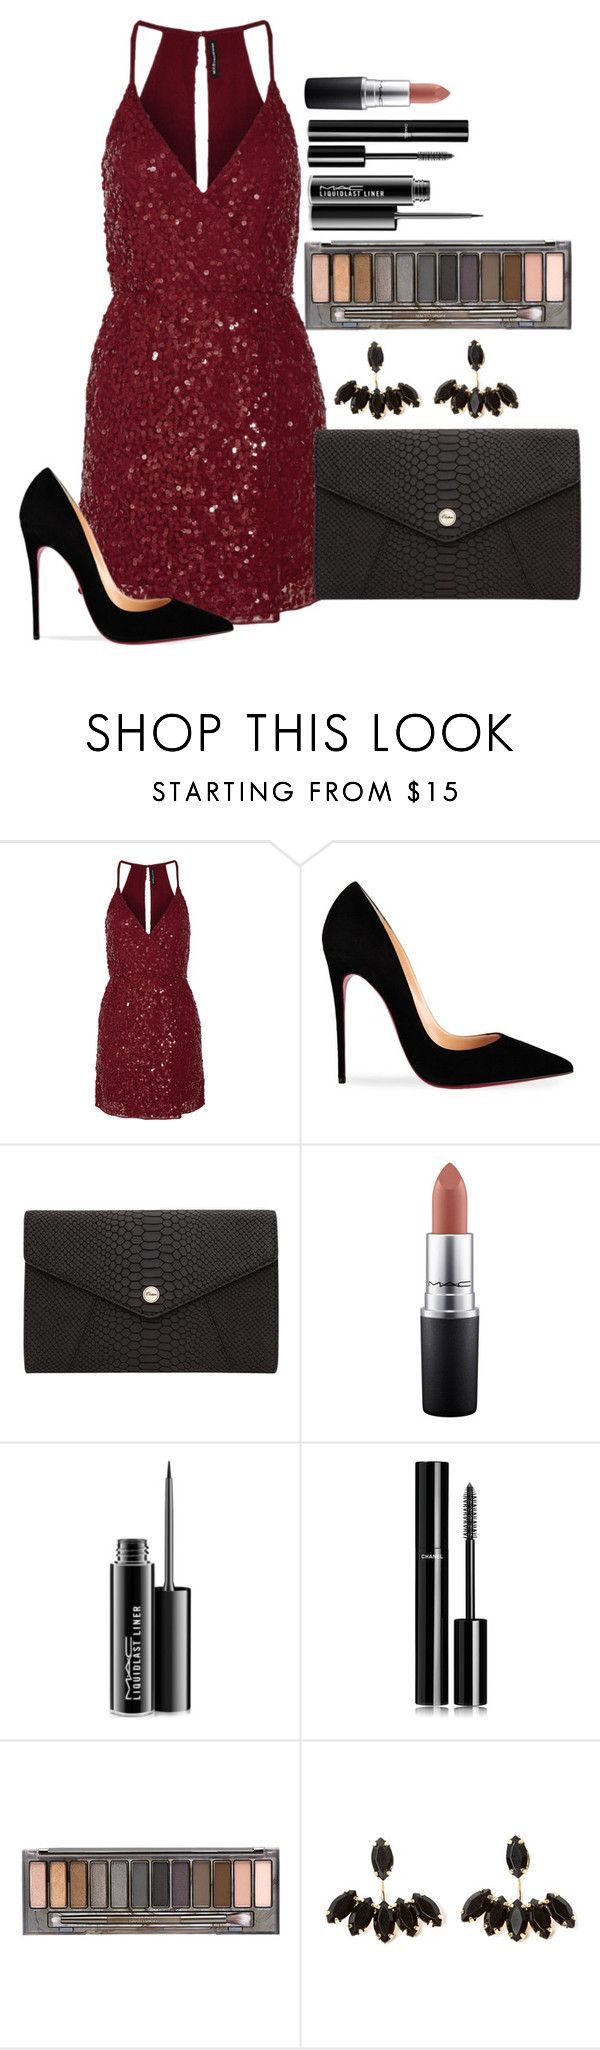 """Untitled #1341"" by fabianarveloc on Polyvore featuring W118 by Walter Baker, Christian Louboutin, Oroton, MAC Cosmetics, Chanel and Urban Decay"